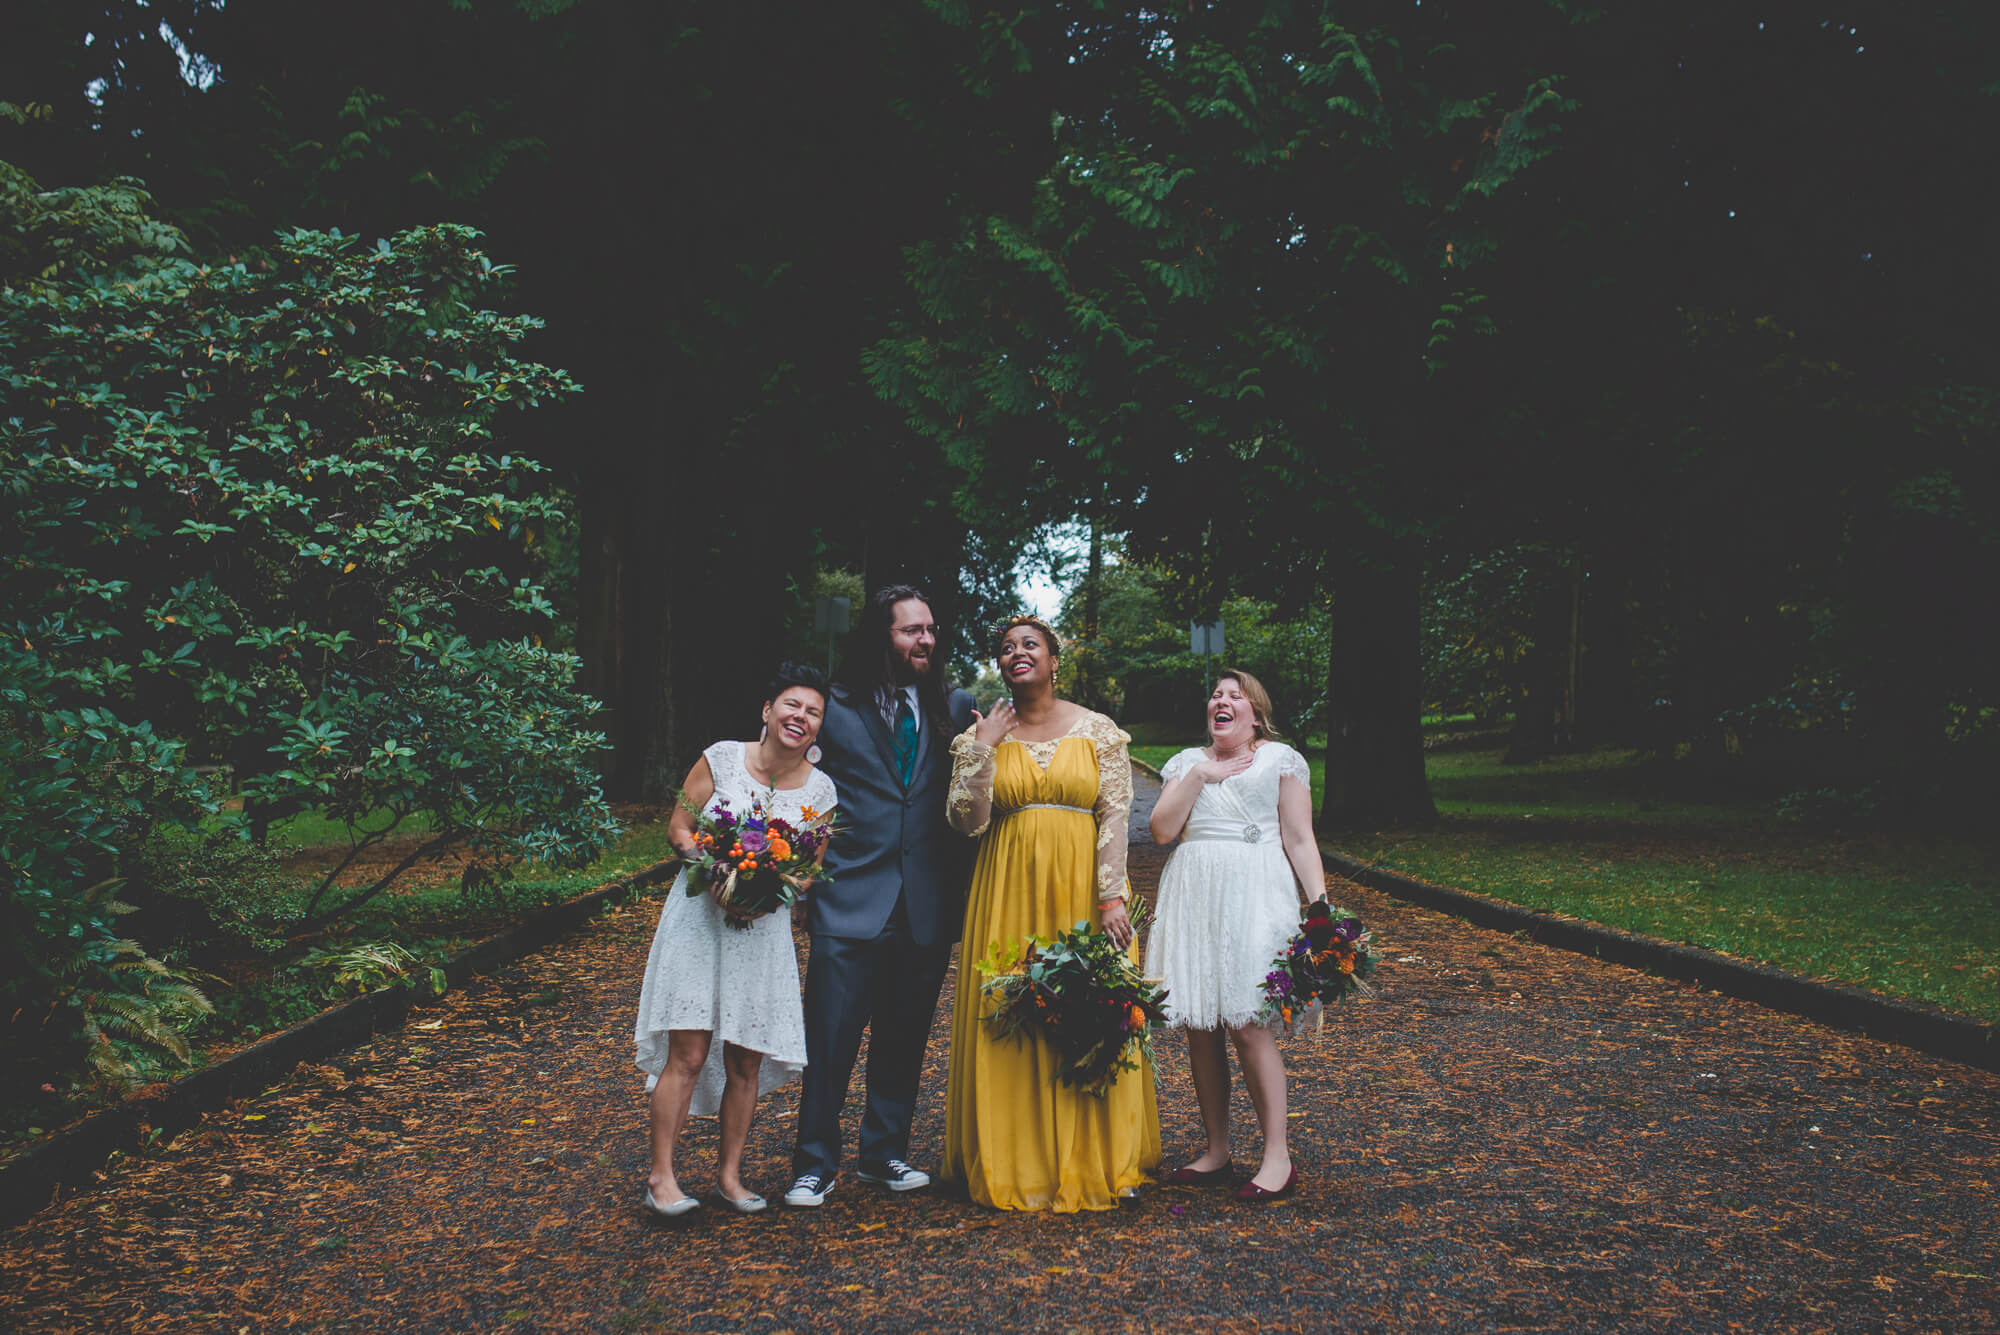 bride in beautiful yellow wedding dress and succulent bouquet laughs with wedding party at Centennial Lodge in New Westminster